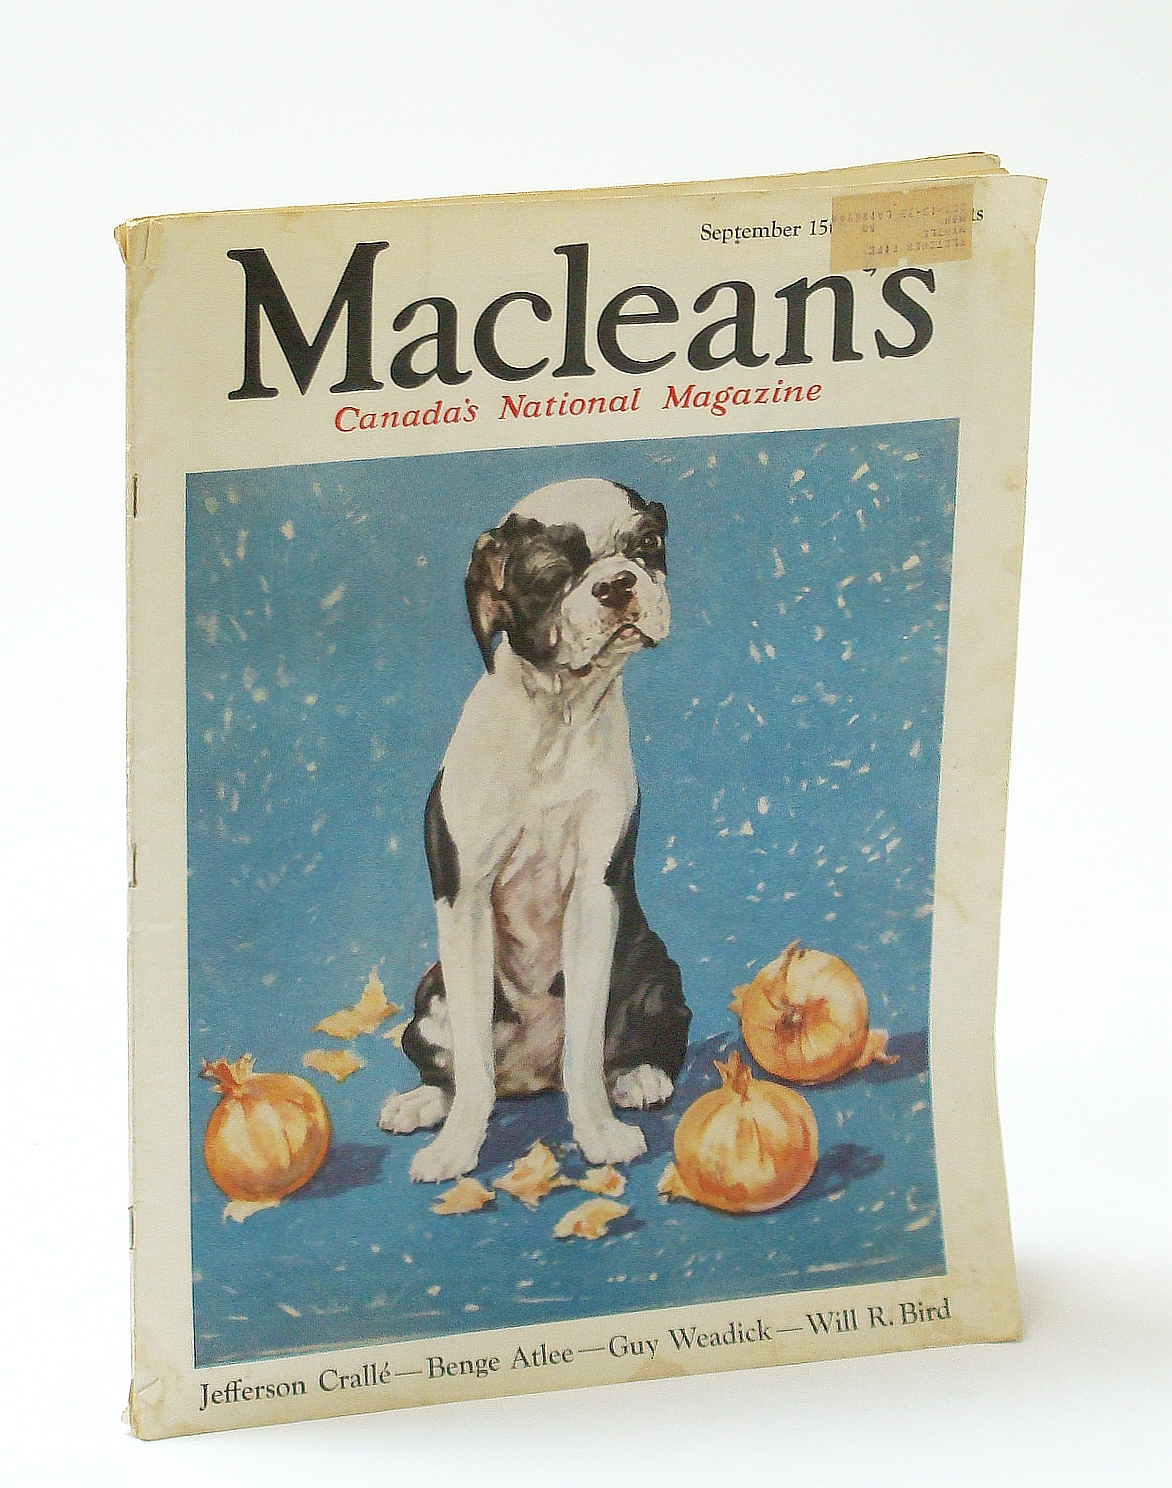 Image for Maclean's, Canada's National Magazine, September (Sept.) 15, 1933, Vol. 46, No. 18 - The Aemilius Jarvis Conspiracy Case